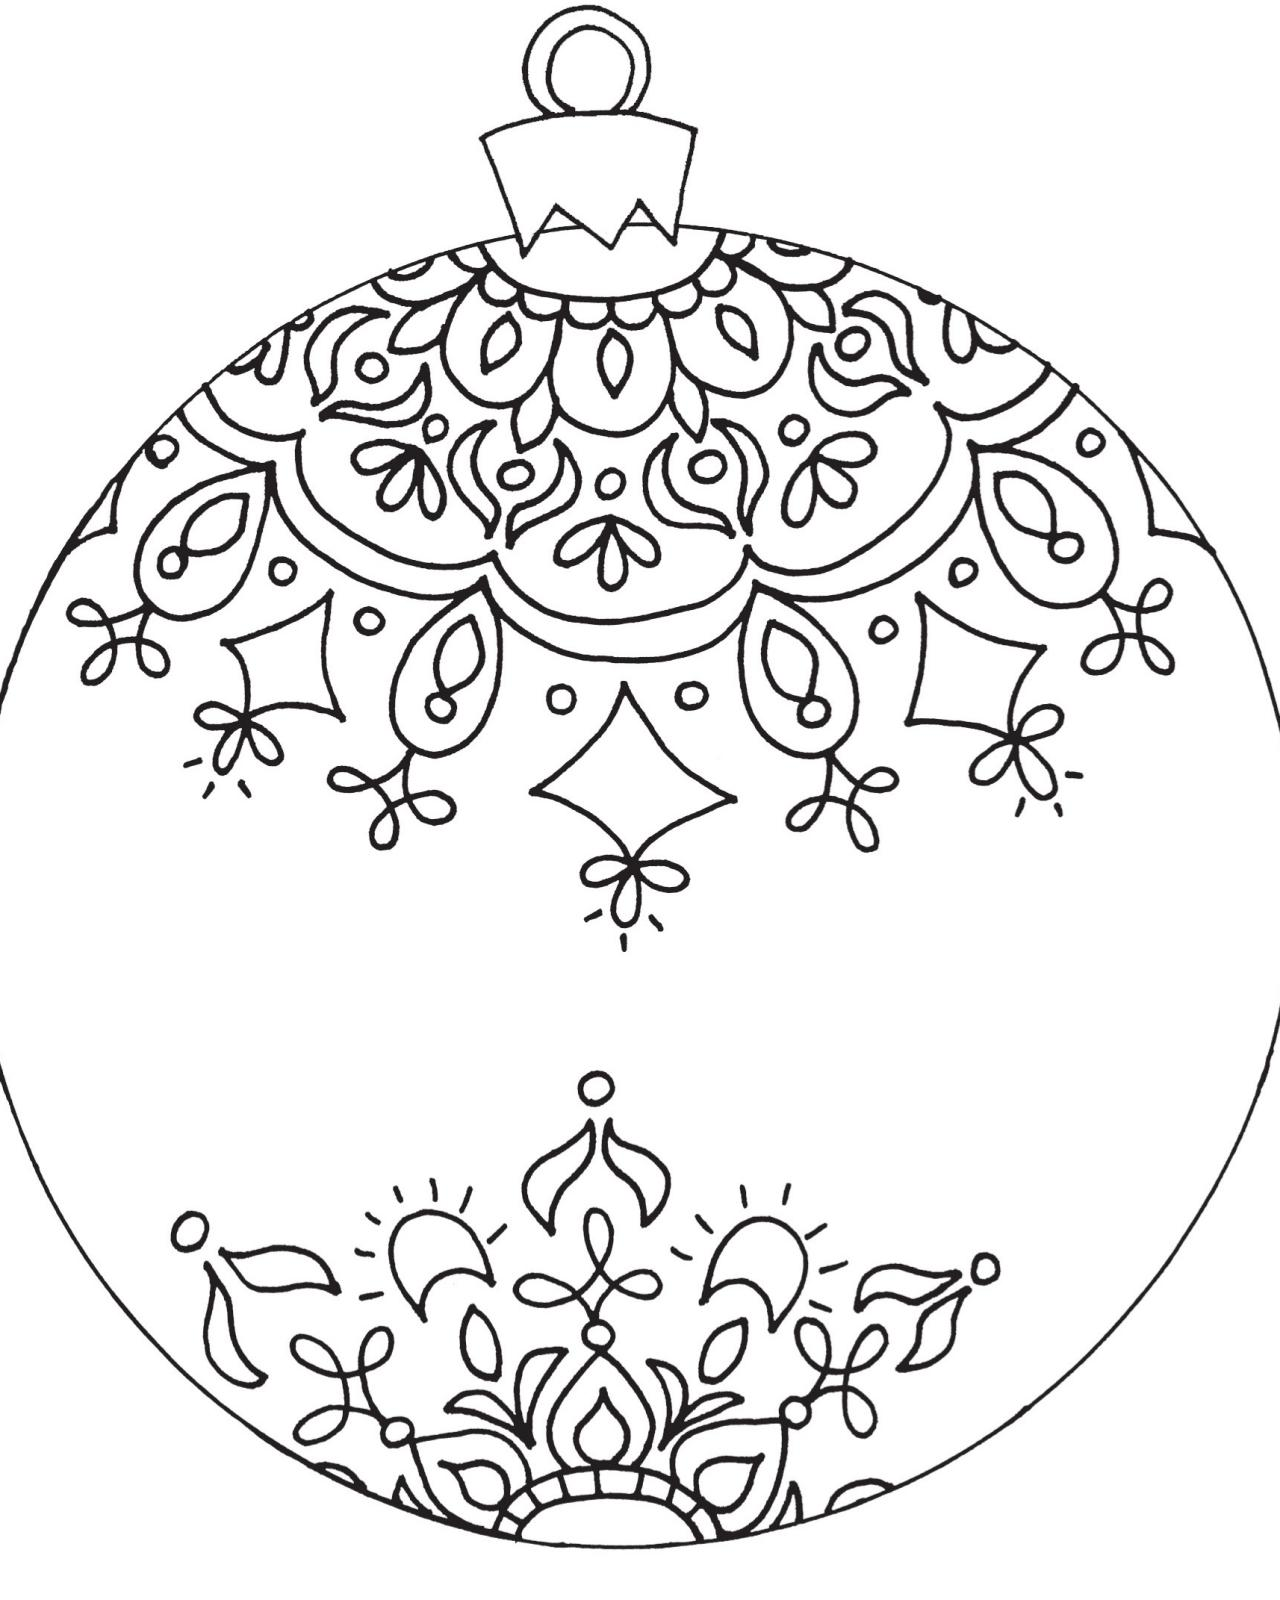 Free Christmas Ornament Coloring Pages At Getdrawings Com